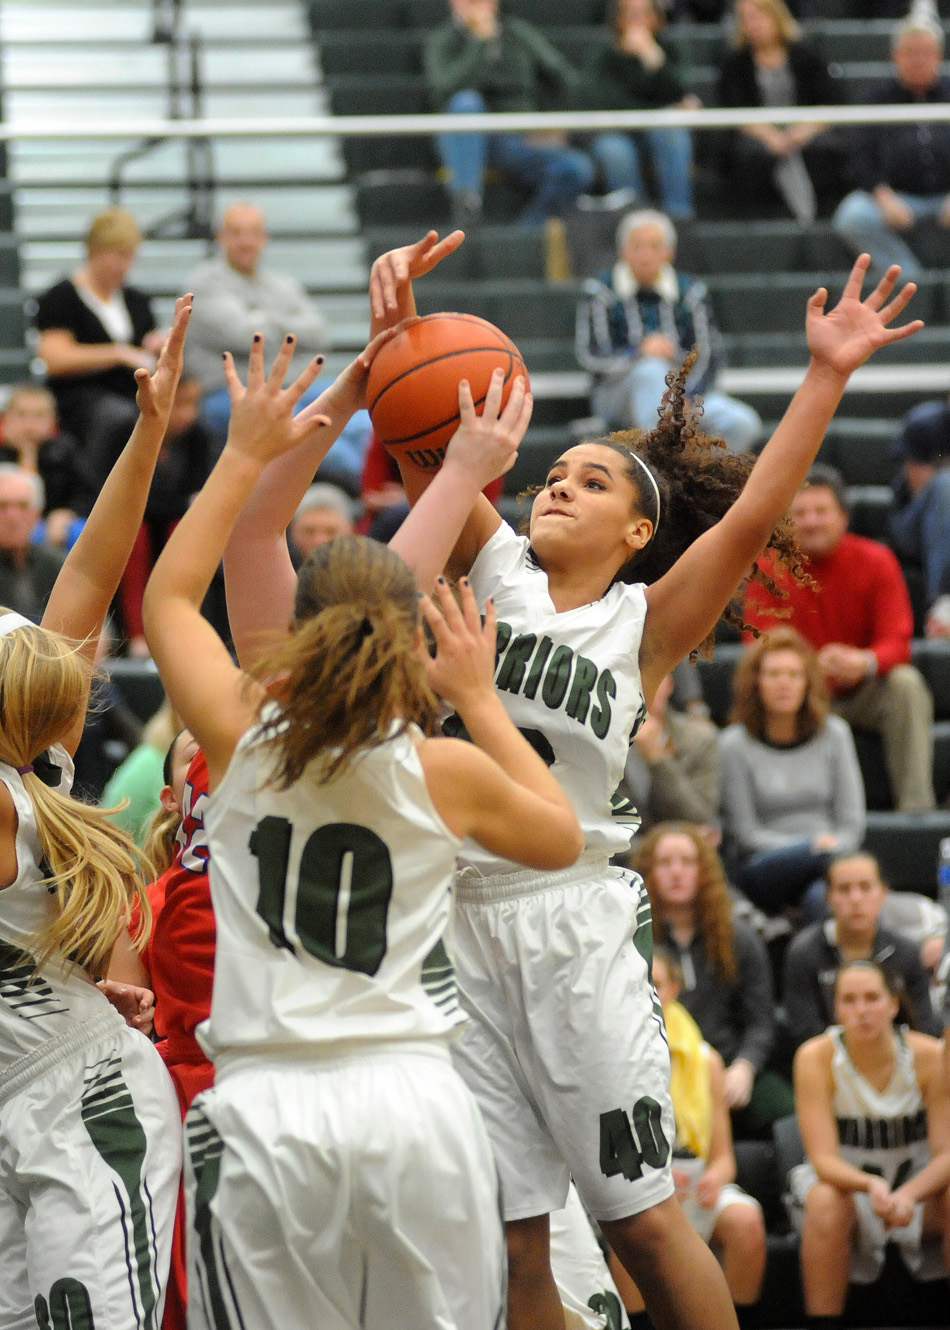 Wawasee's Seaquinn Bright, far right, swats away a West Noble shot attempt.